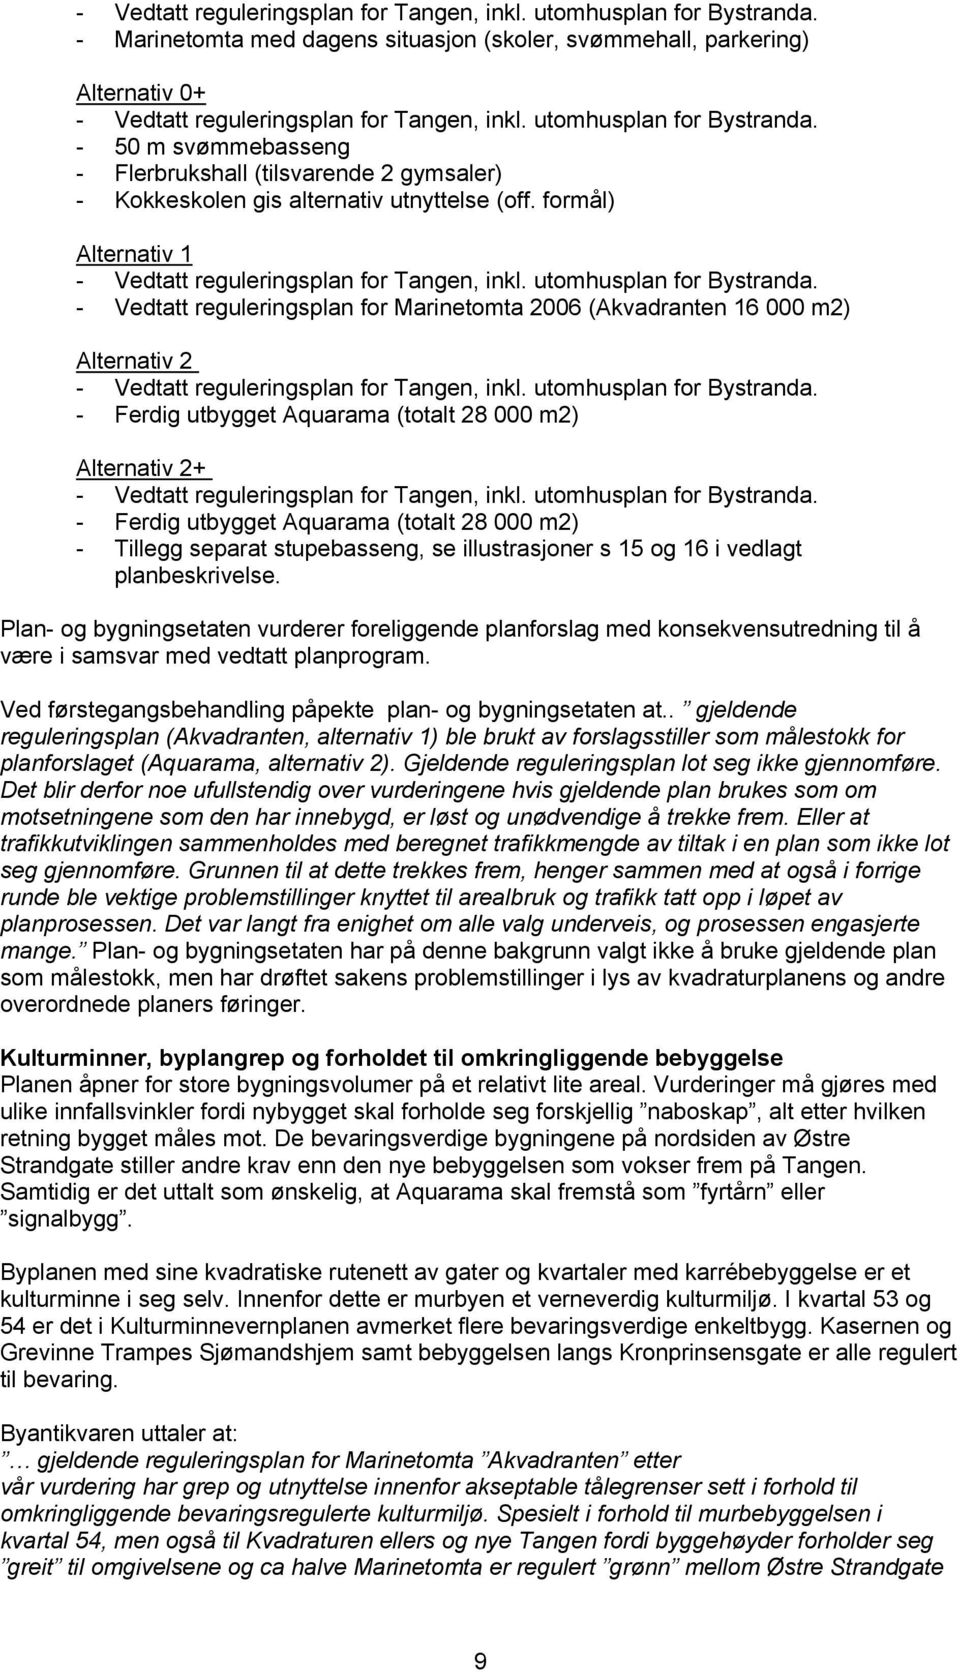 utomhusplan for Bystranda. - Vedtatt reguleringsplan for Marinetomta 2006 (Akvadranten 16 000 m2) Alternativ 2 - Vedtatt reguleringsplan for Tangen, inkl. utomhusplan for Bystranda.